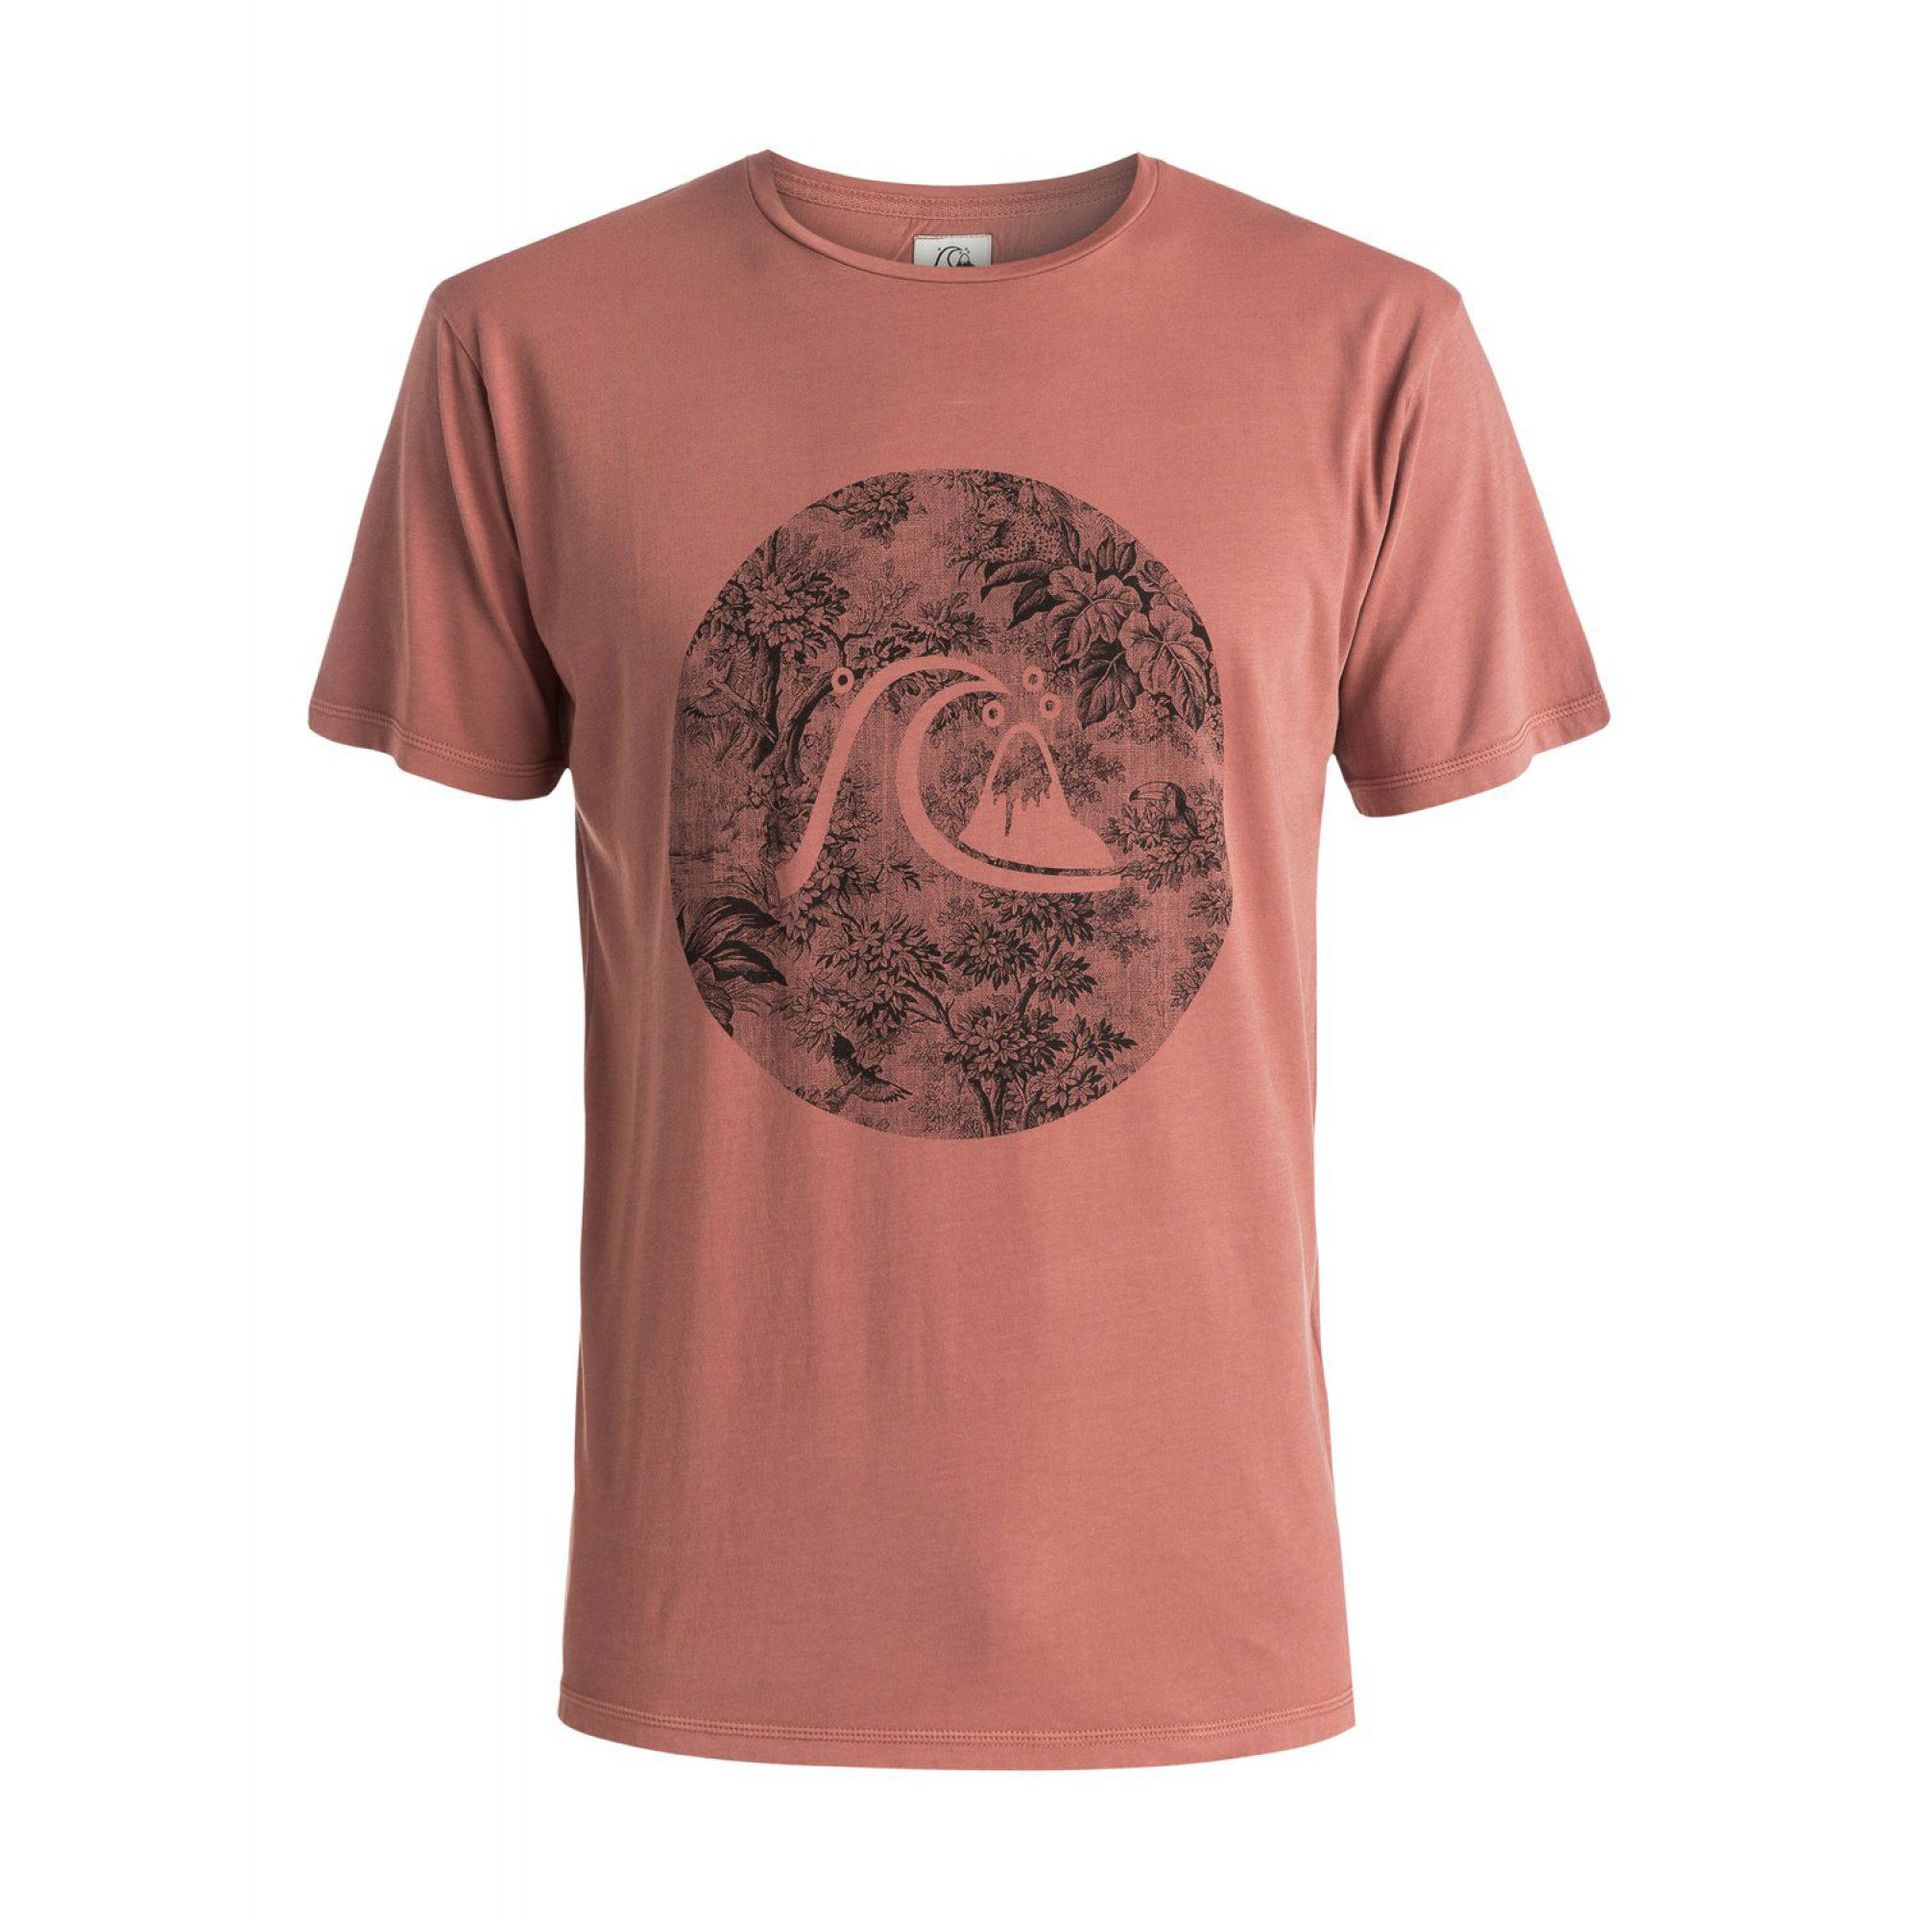 KOSZULKA QUIKSILVER GARMENT DYED SUNSET TUNELS CPS0 2